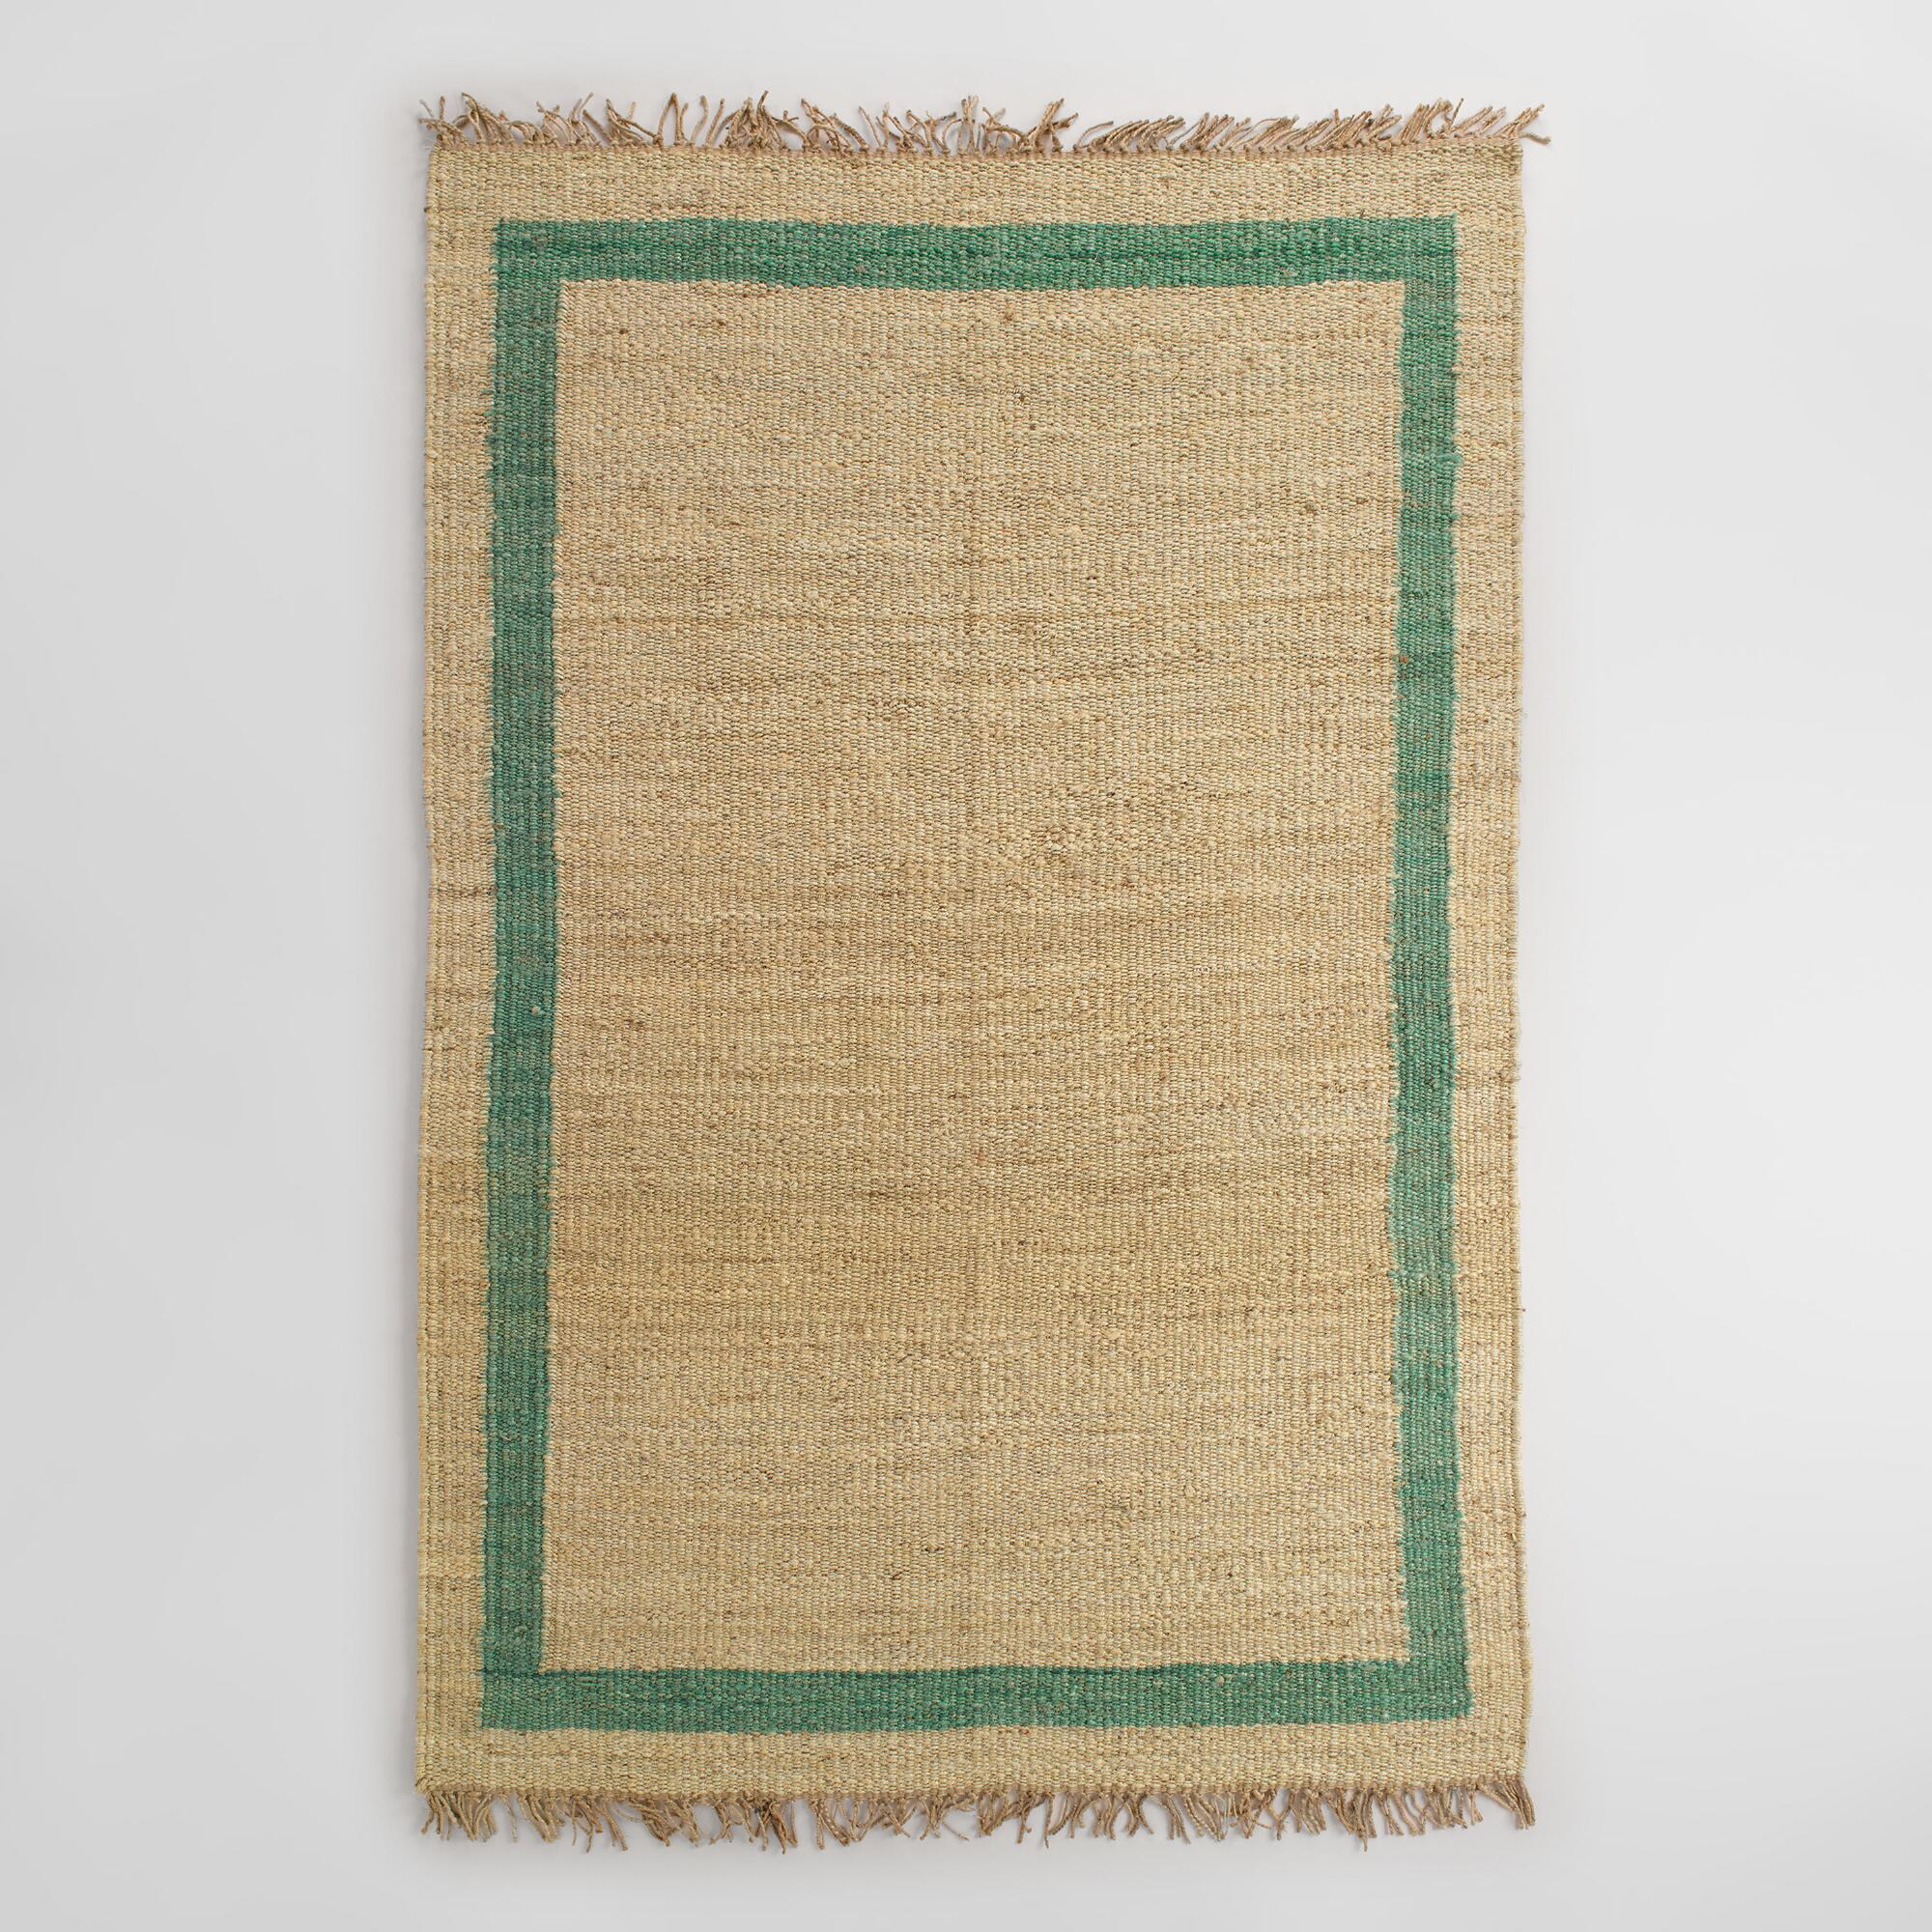 Teal Bordered Woven Jute Area Rug